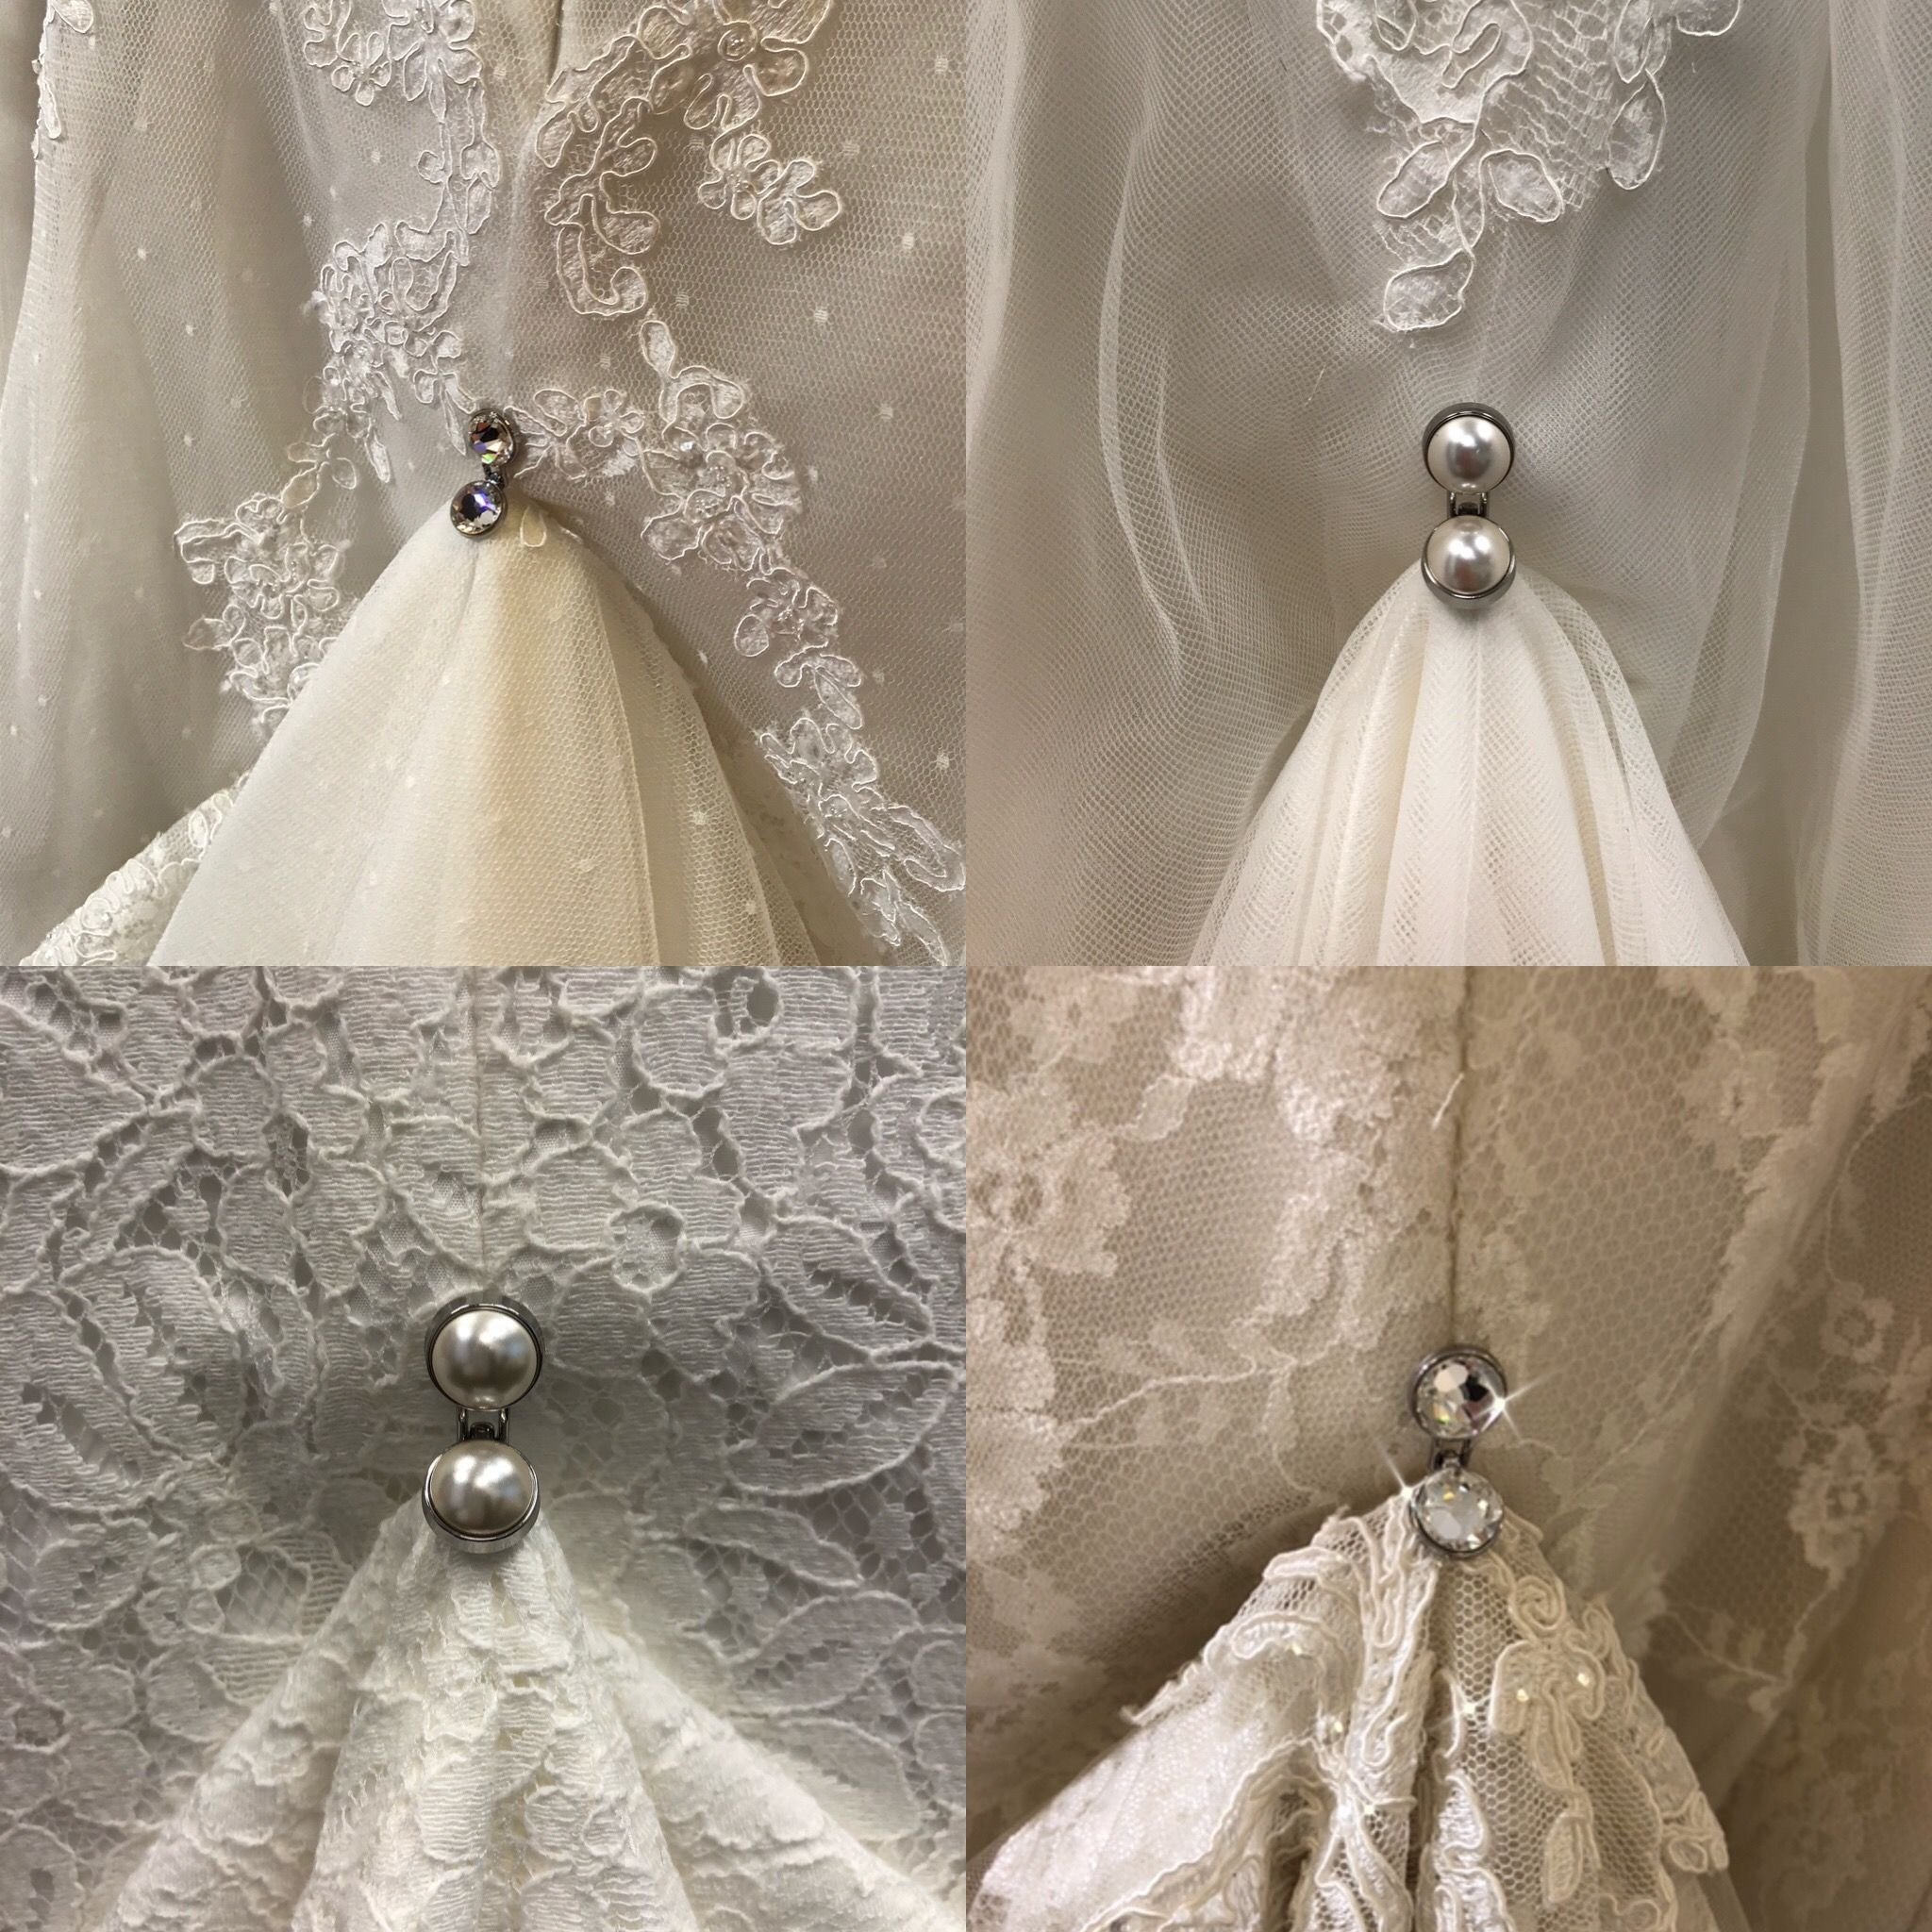 Both Our Swarovski Crystal And Swarovski Pearl Trainloops Look Great On Lace If You Have Wedding Dress Train Bustle Making A Wedding Dress Wedding Gown Bustle